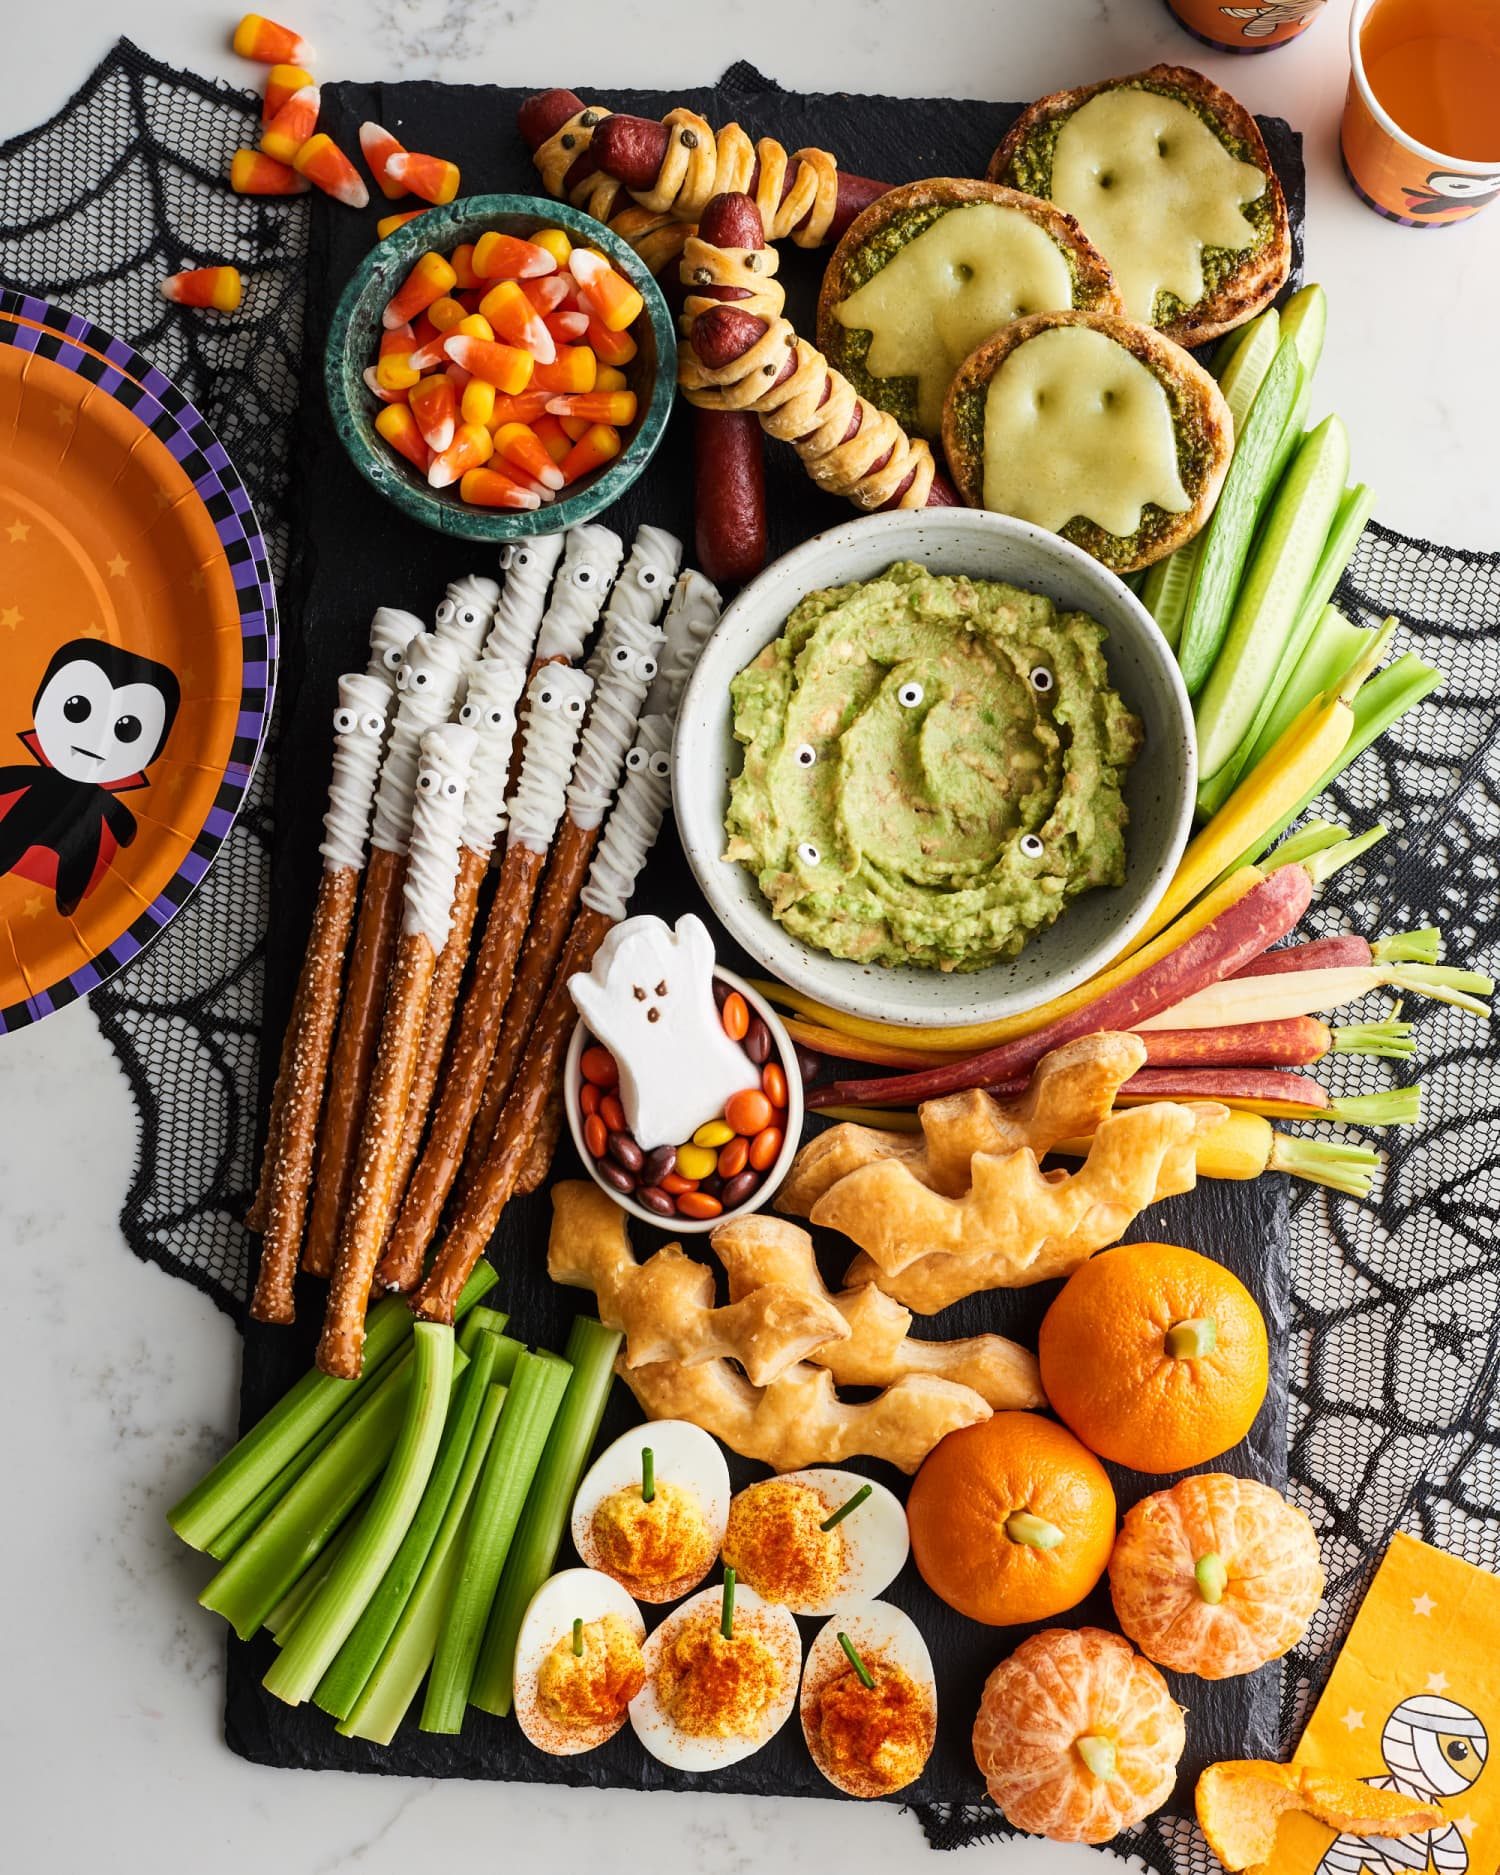 This Ultimate Halloween Snack Board Is So Good, You Might Forget to Trick-or-Treat